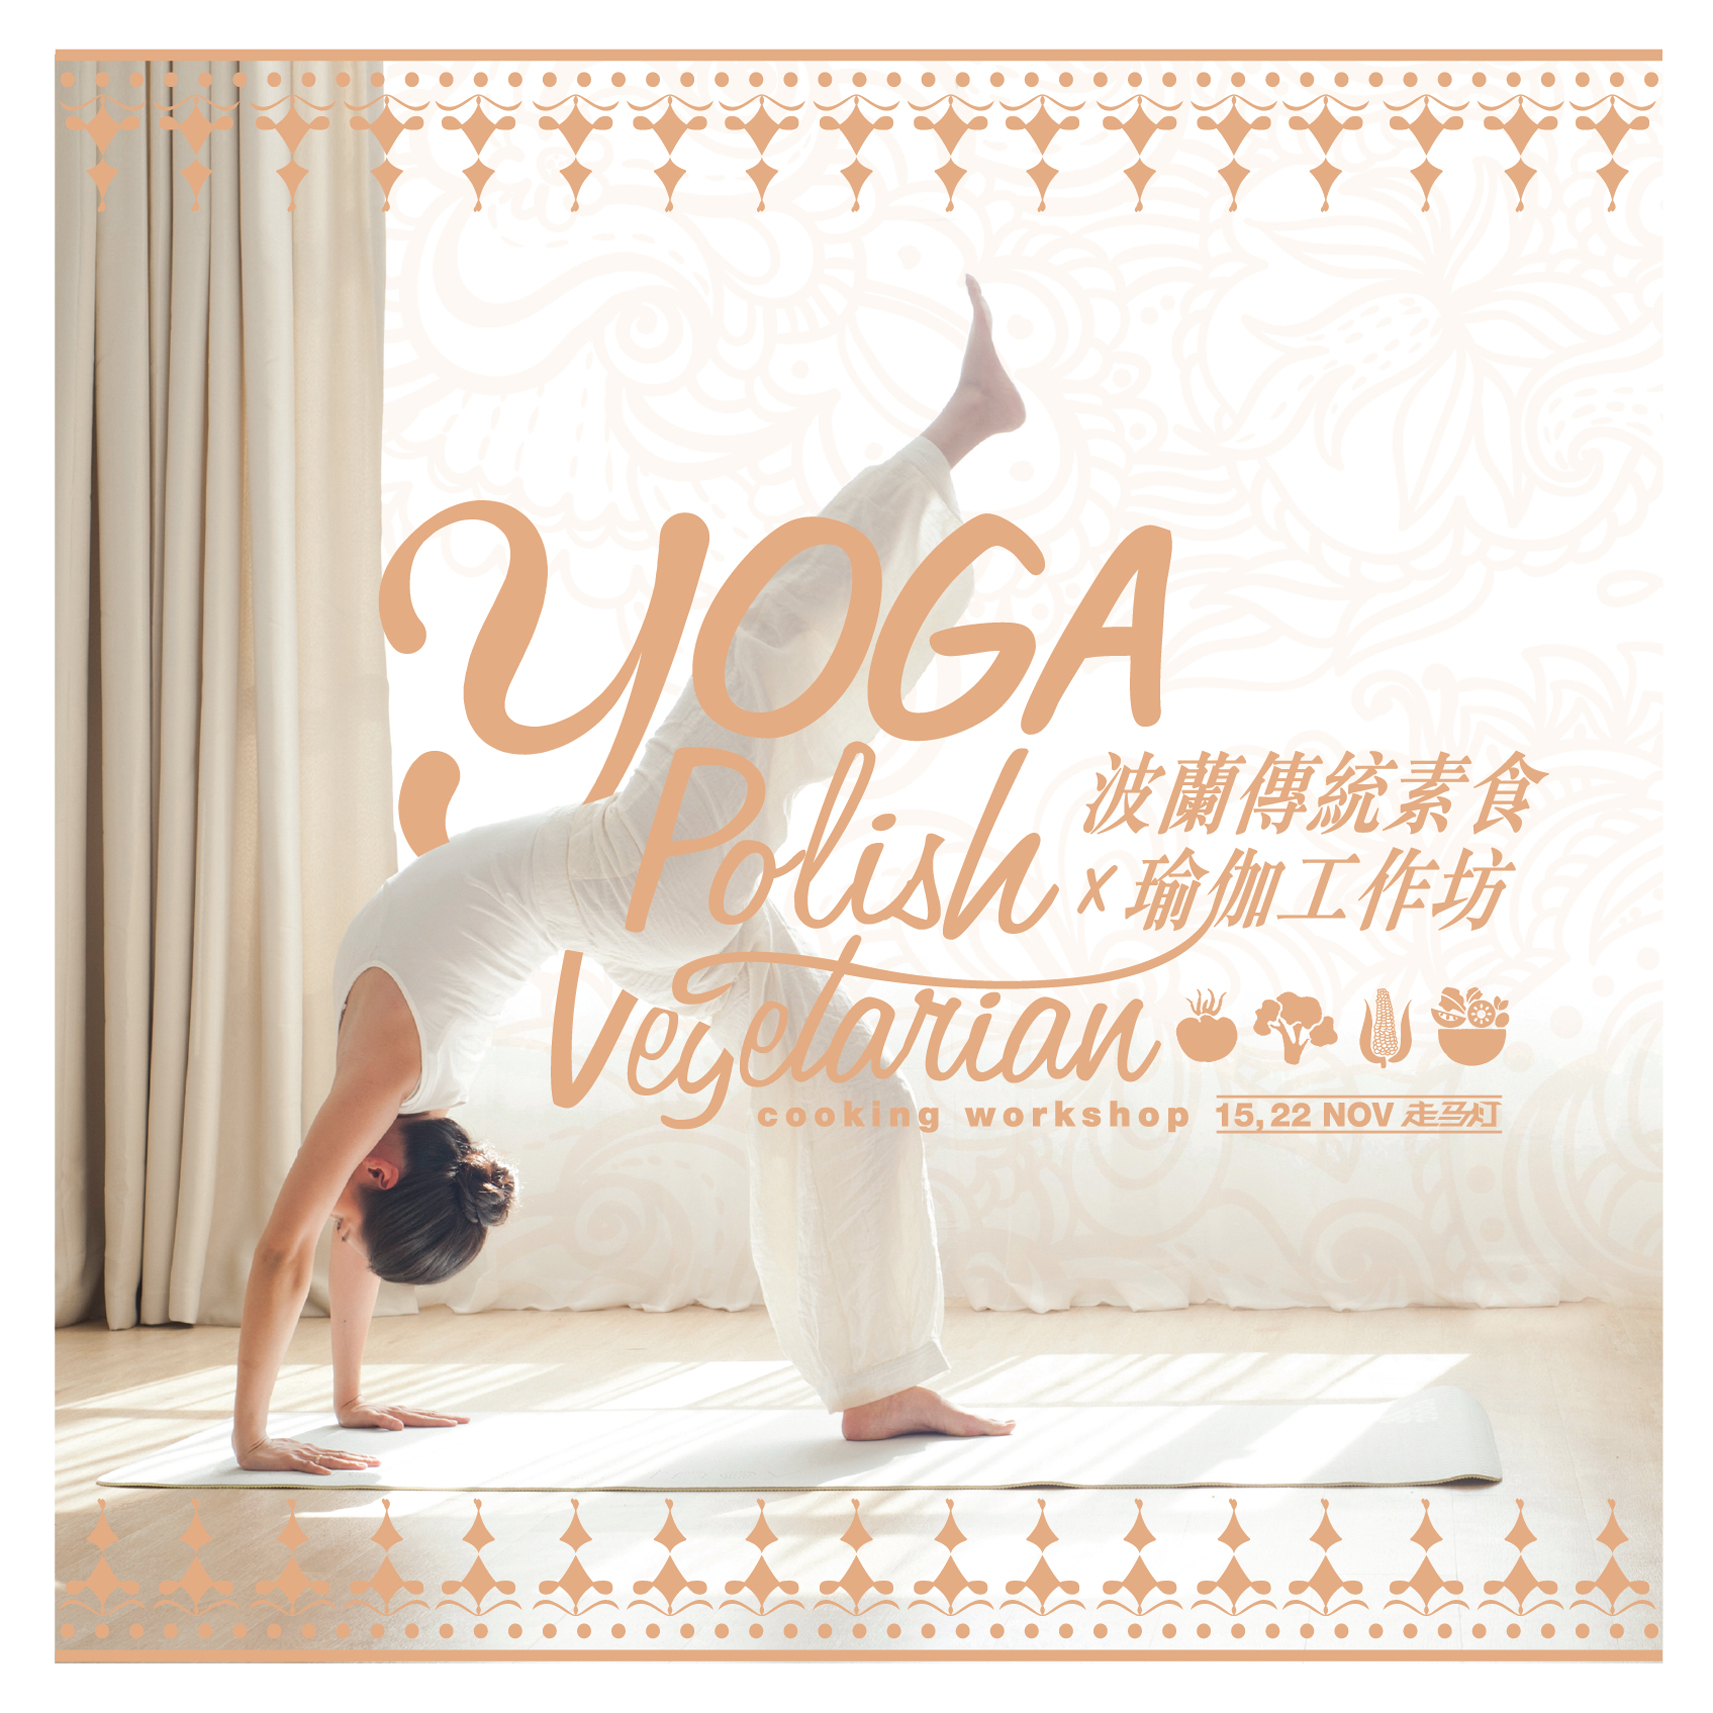 Yoga Polish Vegetarian